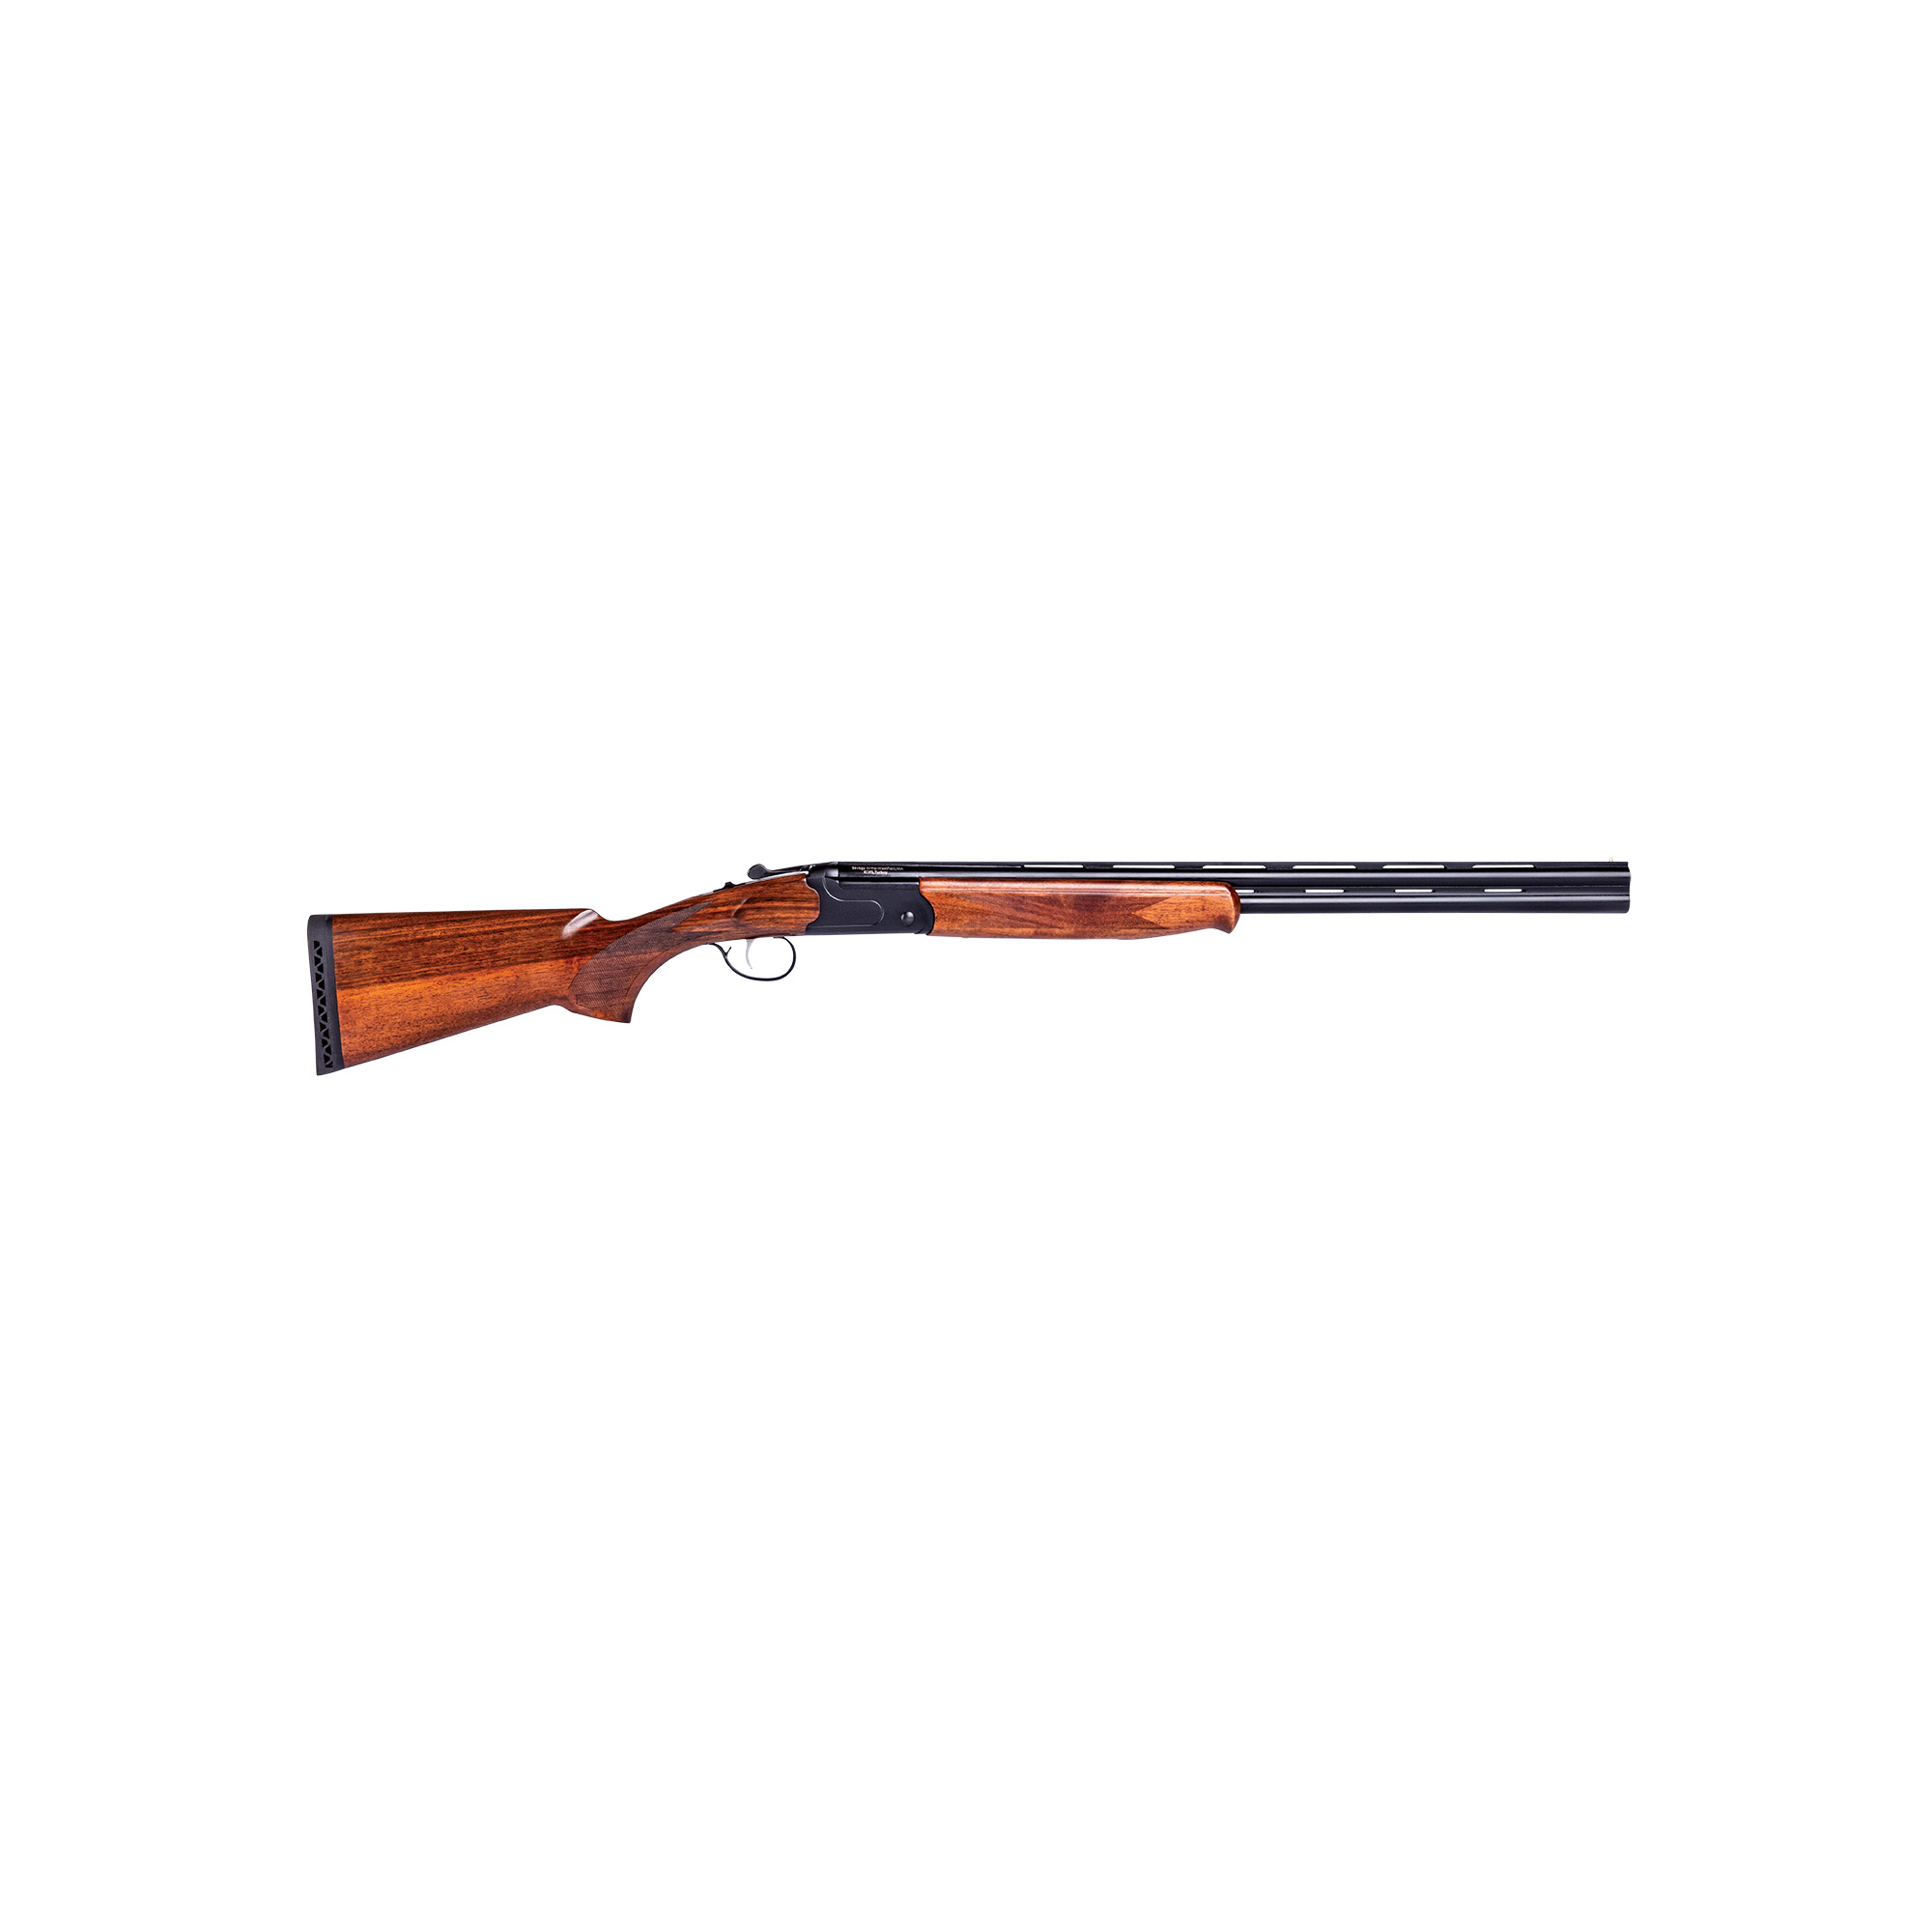 "Get world-class performance in an over-under at an affordable price. The Stevens 555 is light and handles fast"" thanks to a lightweight aluminum receiver. It's also loaded with features"" including a stylish Turkish walnut stock and chrome-lined"" 28-inch carbon steel barrels."